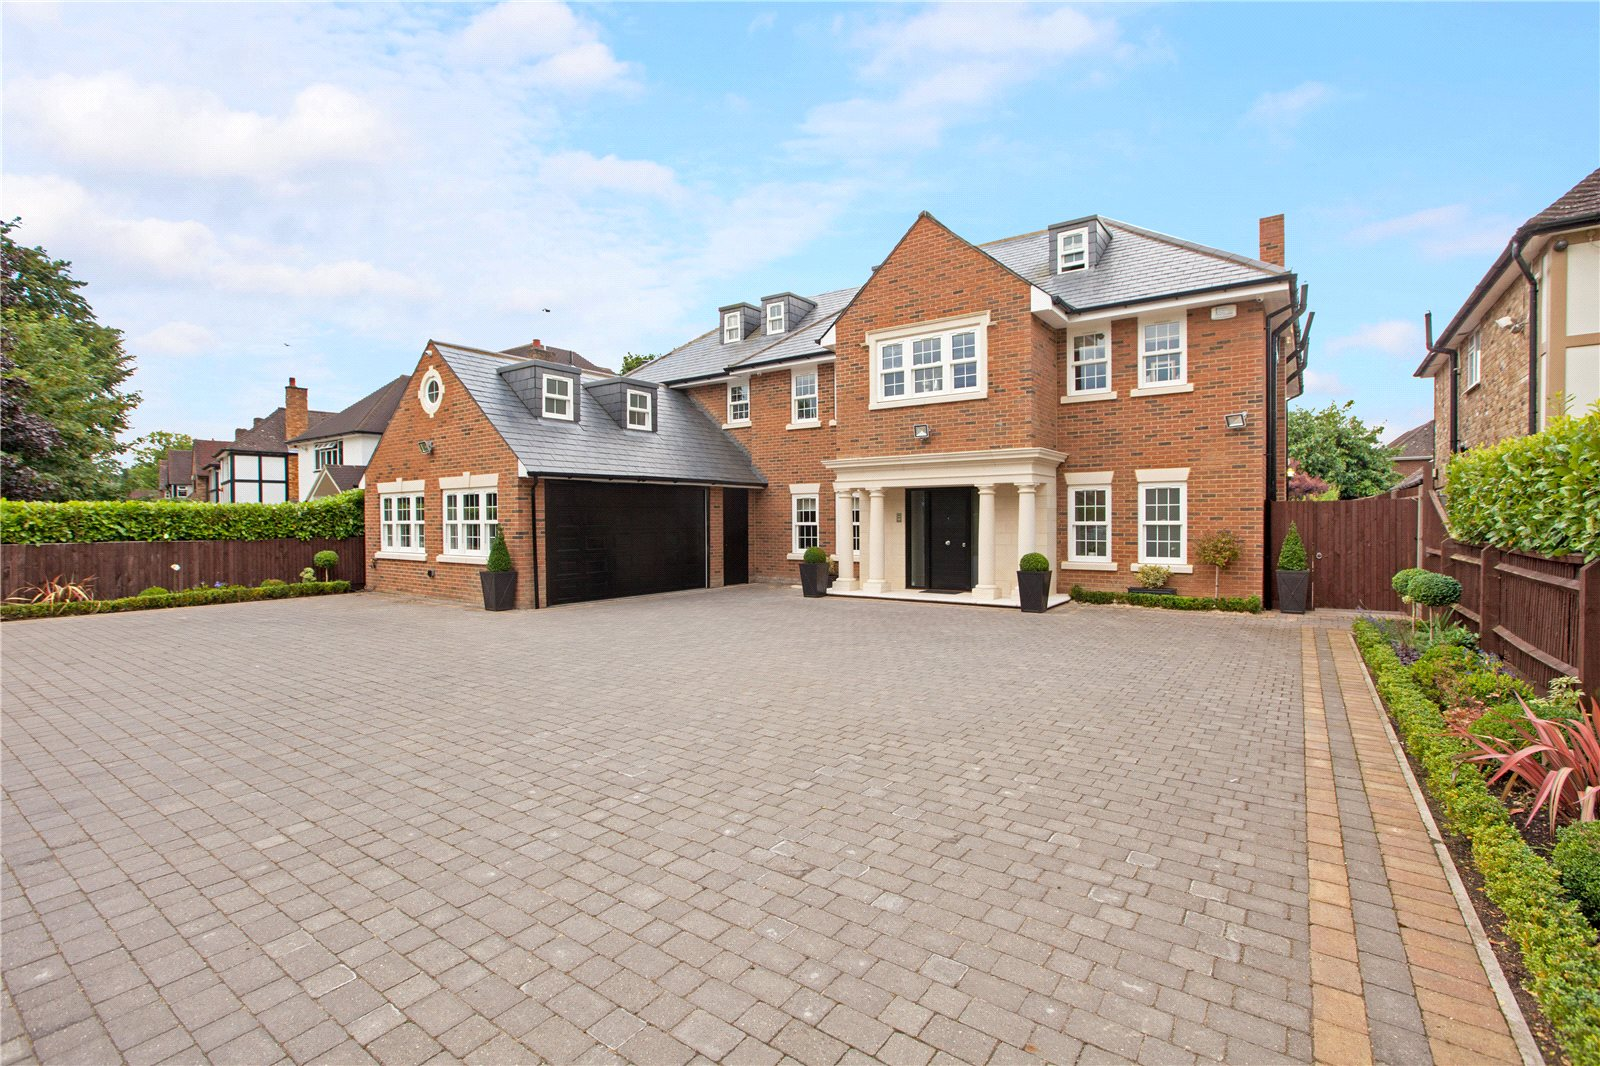 獨棟家庭住宅 為 出售 在 Dukes Wood Drive, Gerrards Cross, Buckinghamshire, SL9 Gerrards Cross, 英格蘭